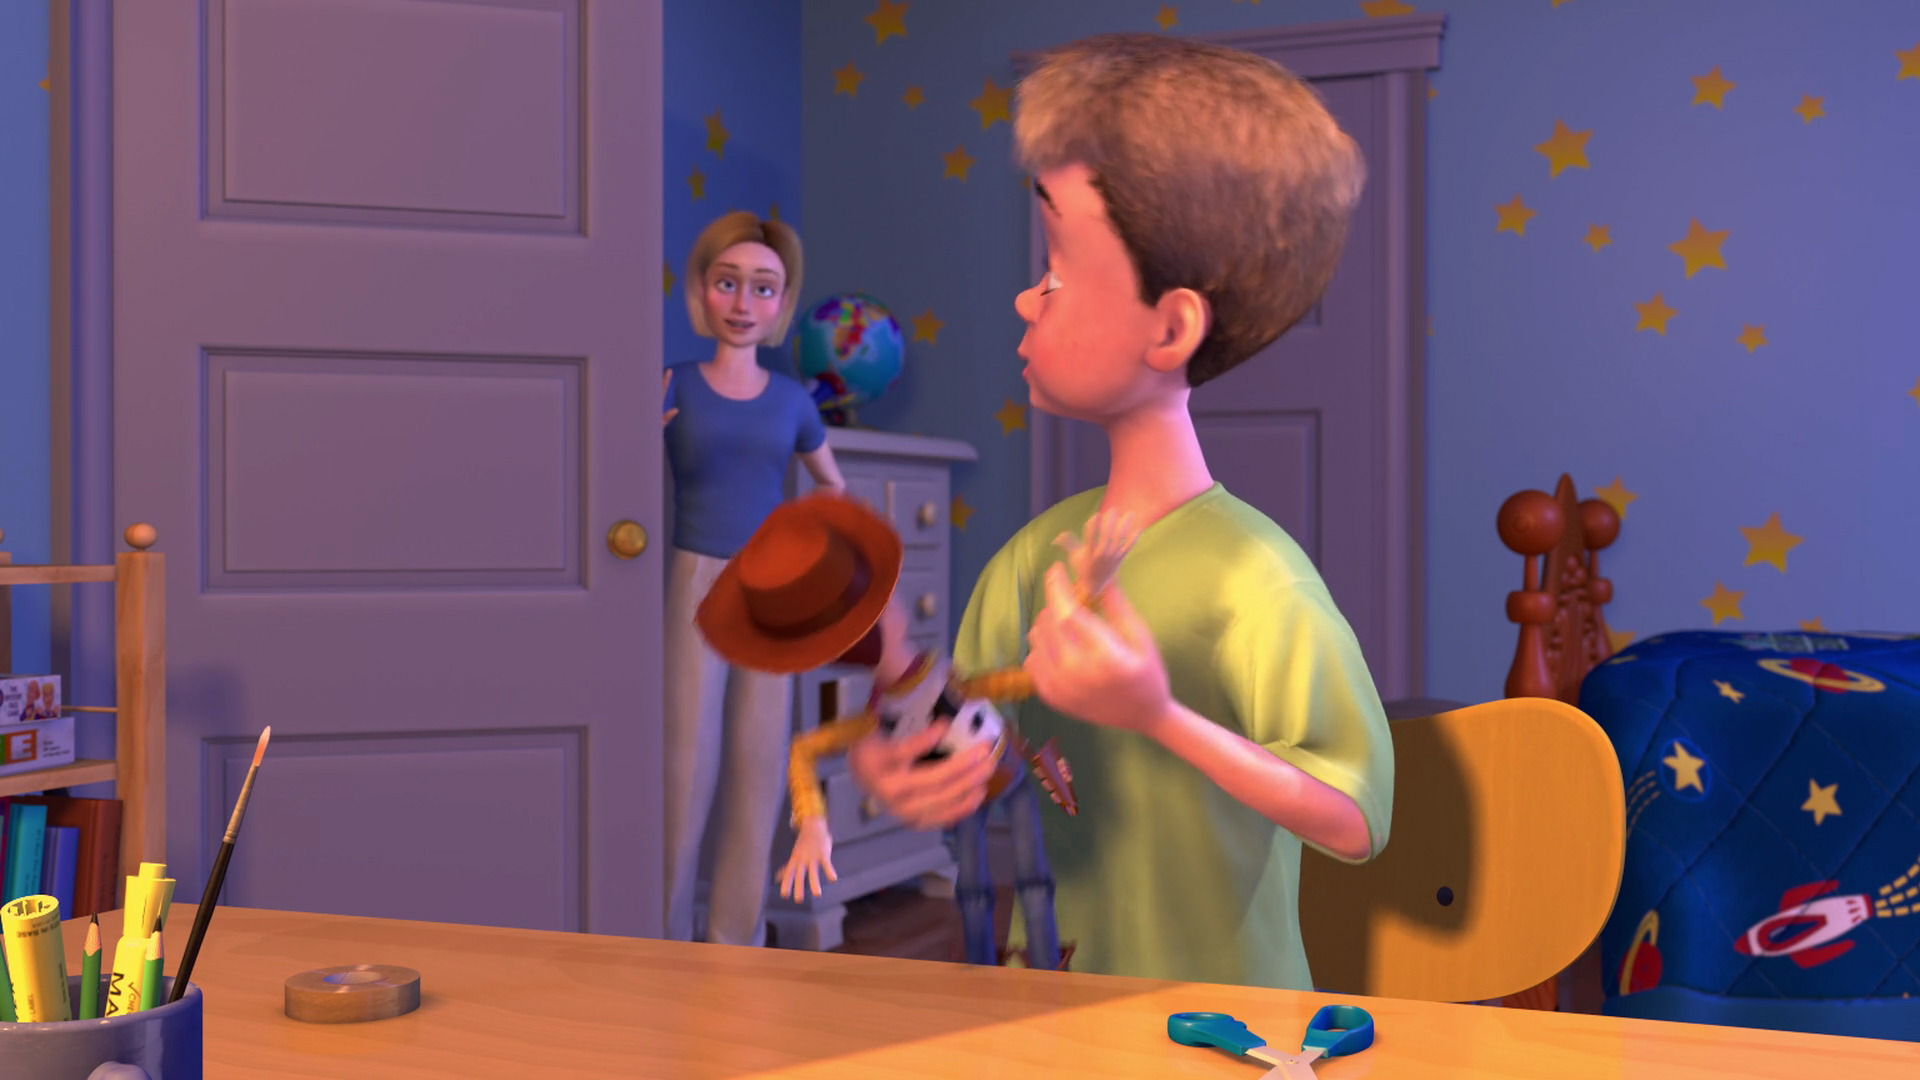 Cowboy Bedroom Mrs Davis Character From Toy Story Pixar Planet Fr